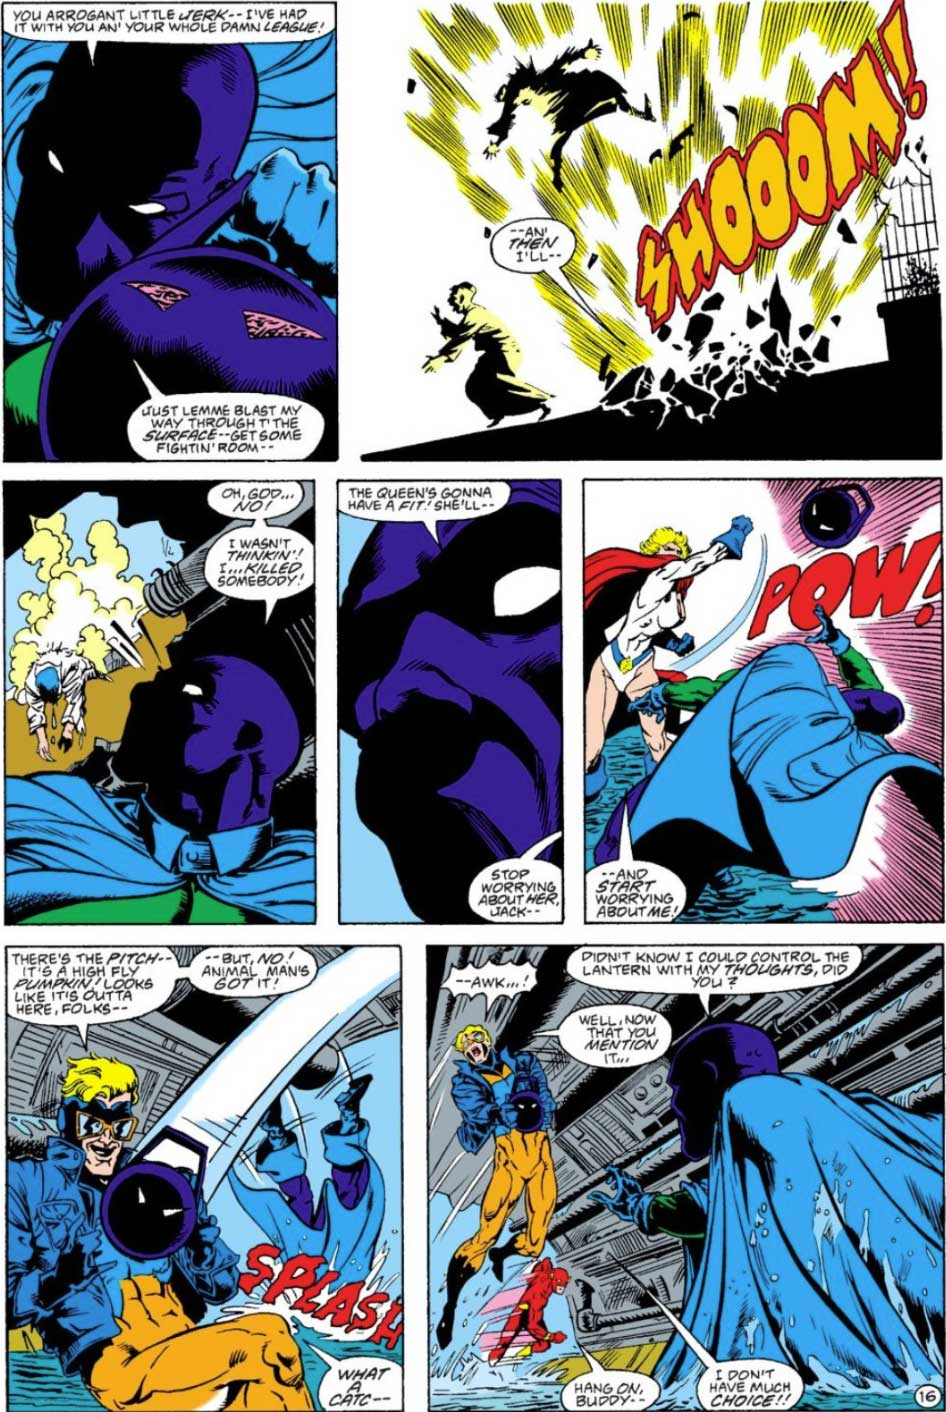 Justice League Europe #4 by Keith Giffen, J.M. DeMatteis, Bart Sears and Pablo Marcos